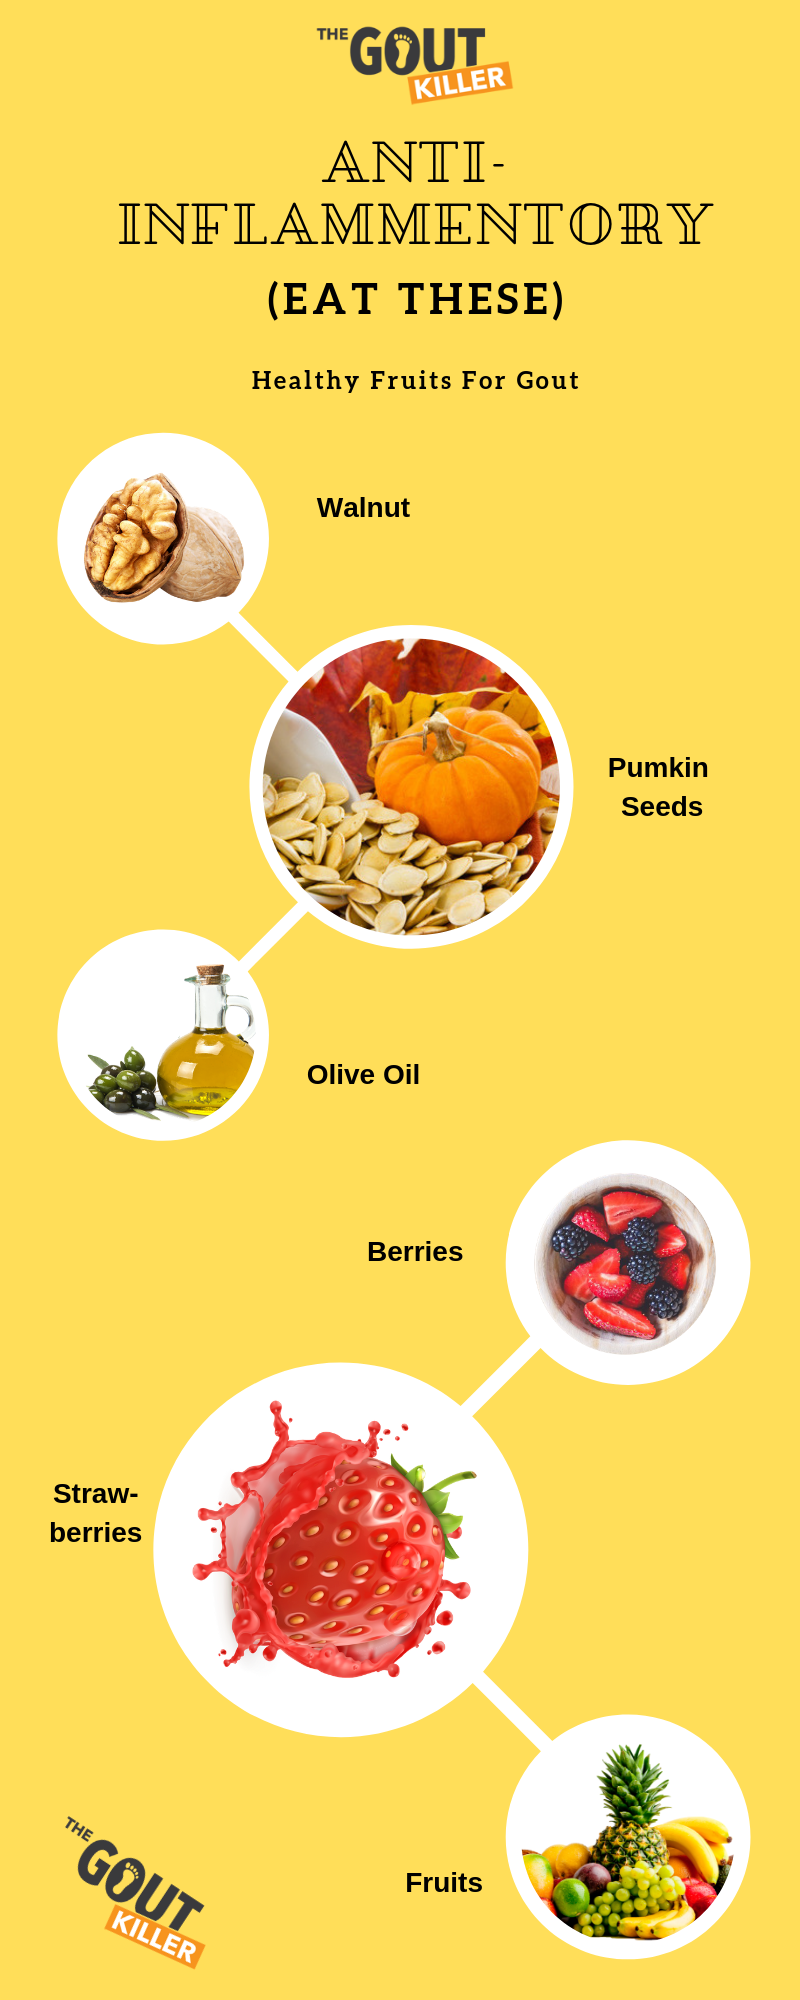 Healthy Fruits For Gout - The Gout Killer